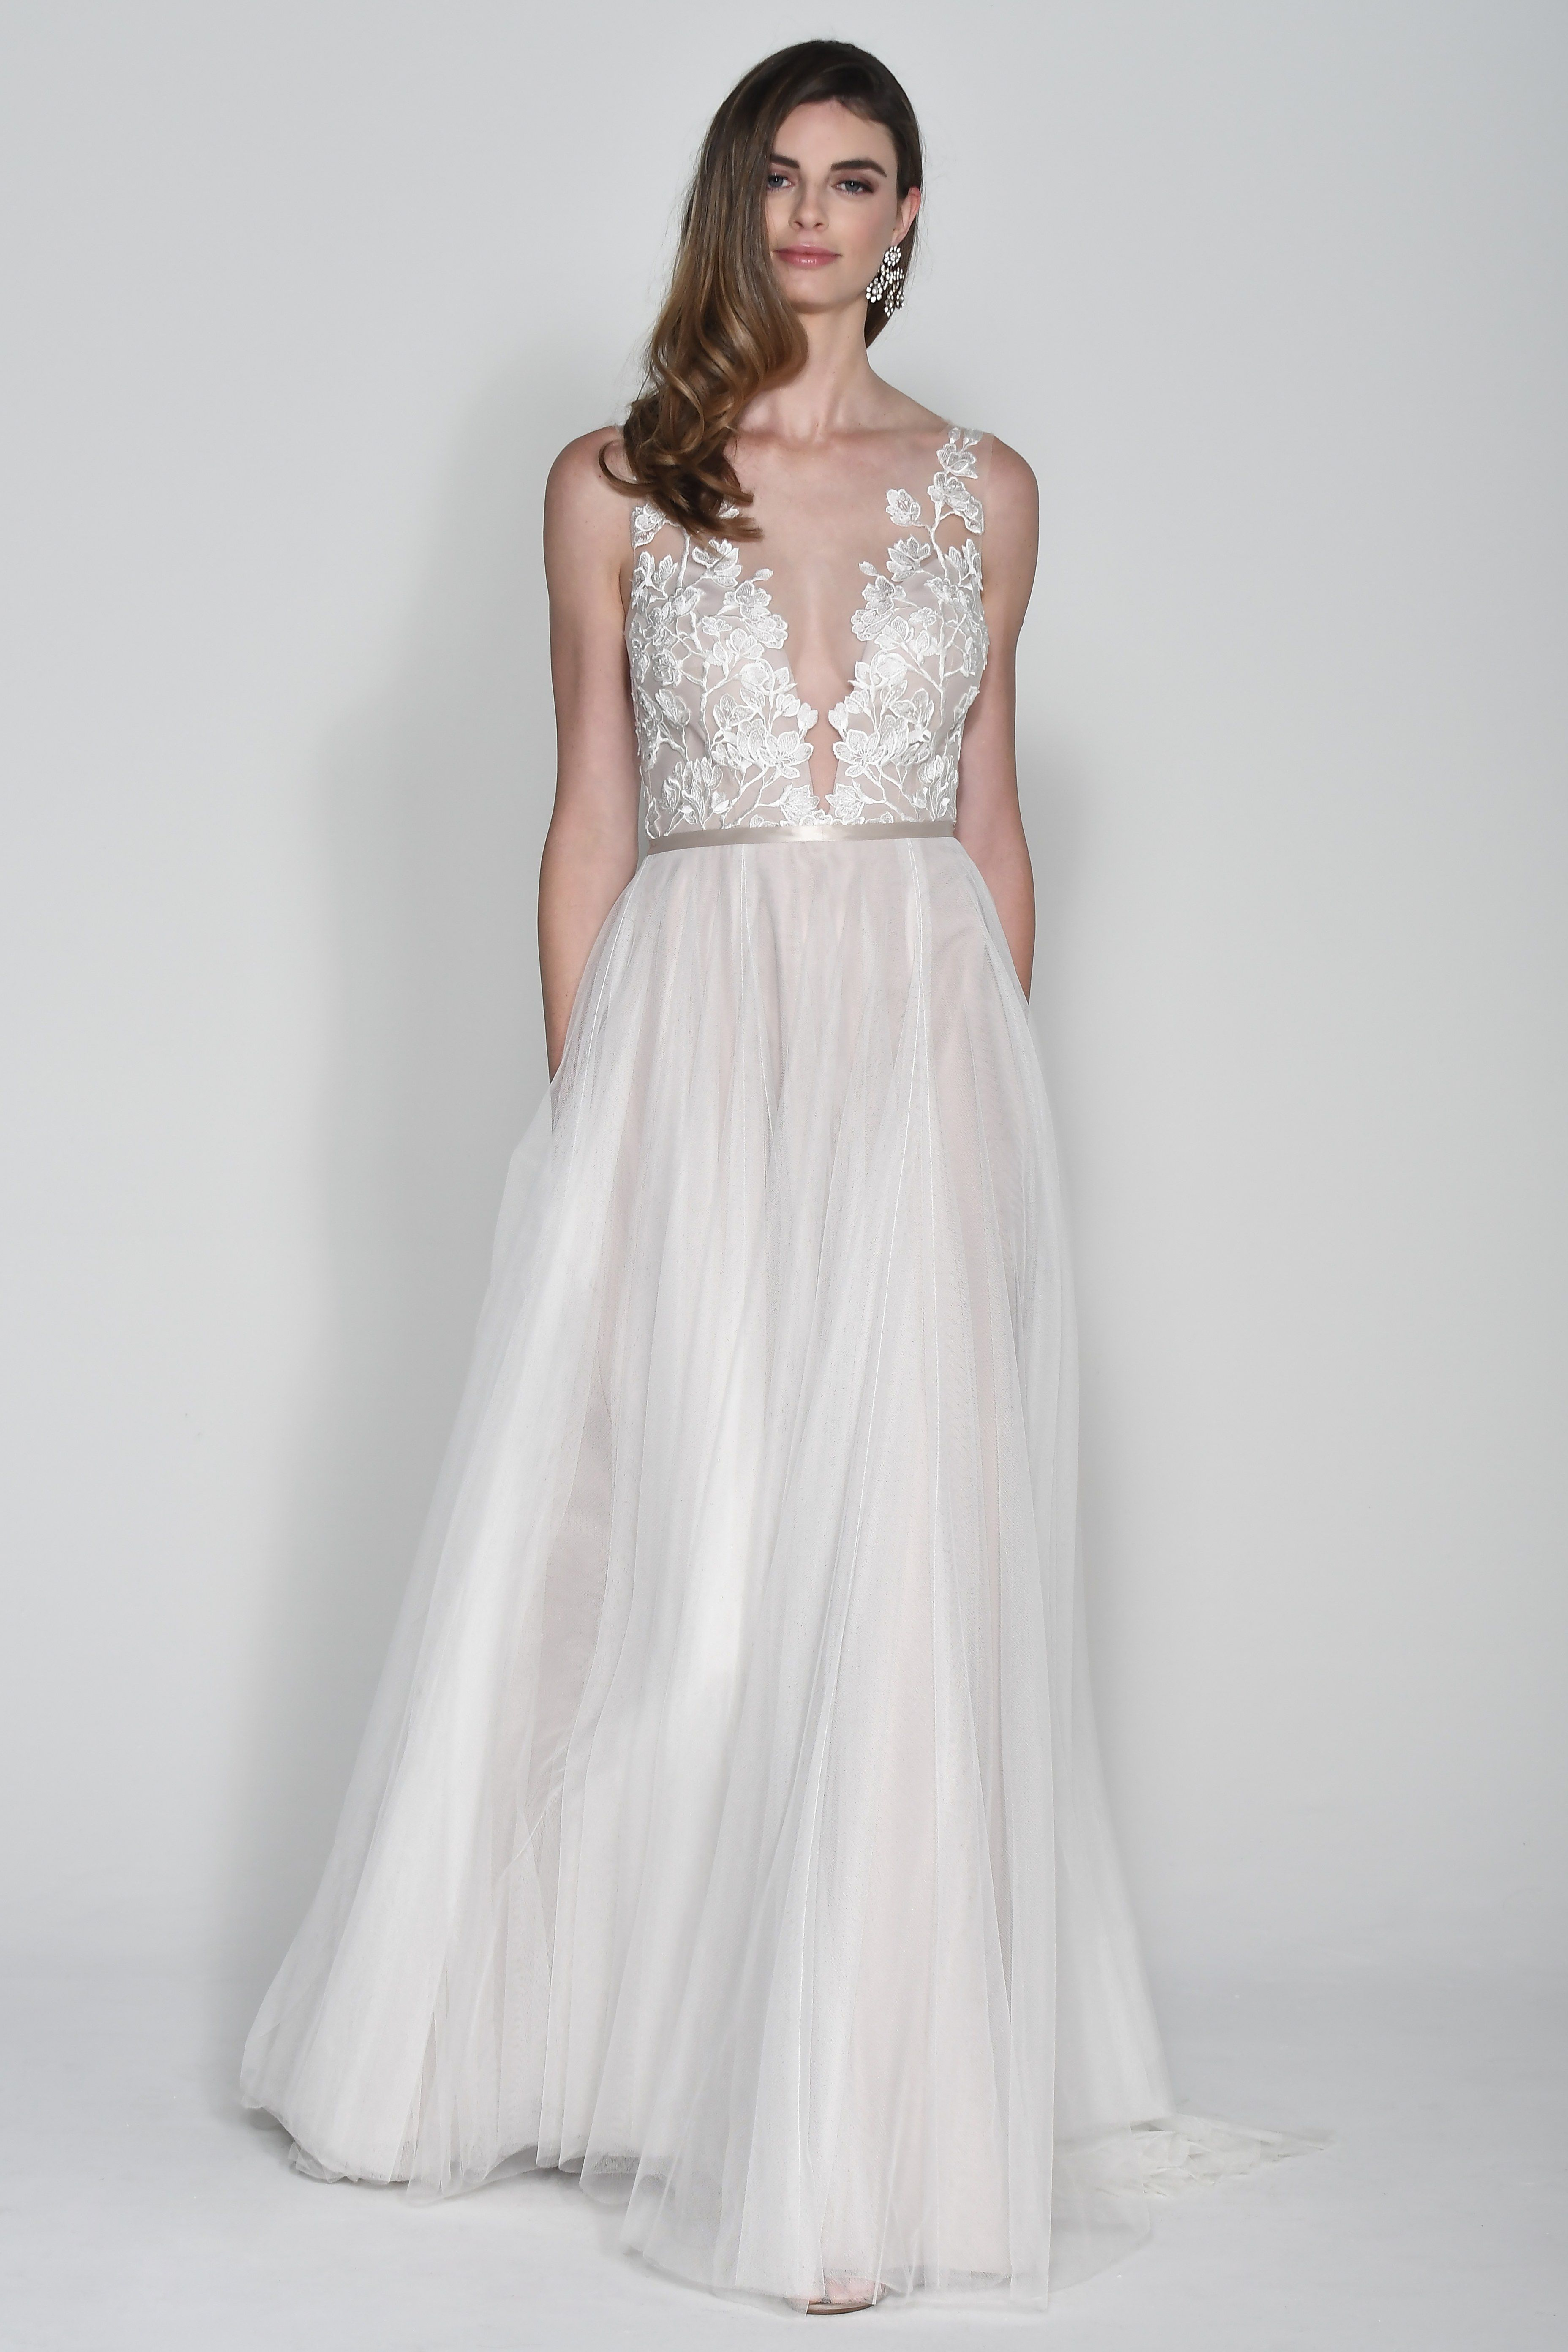 Wtoo bridal u wedding dress collection fall brides outfits